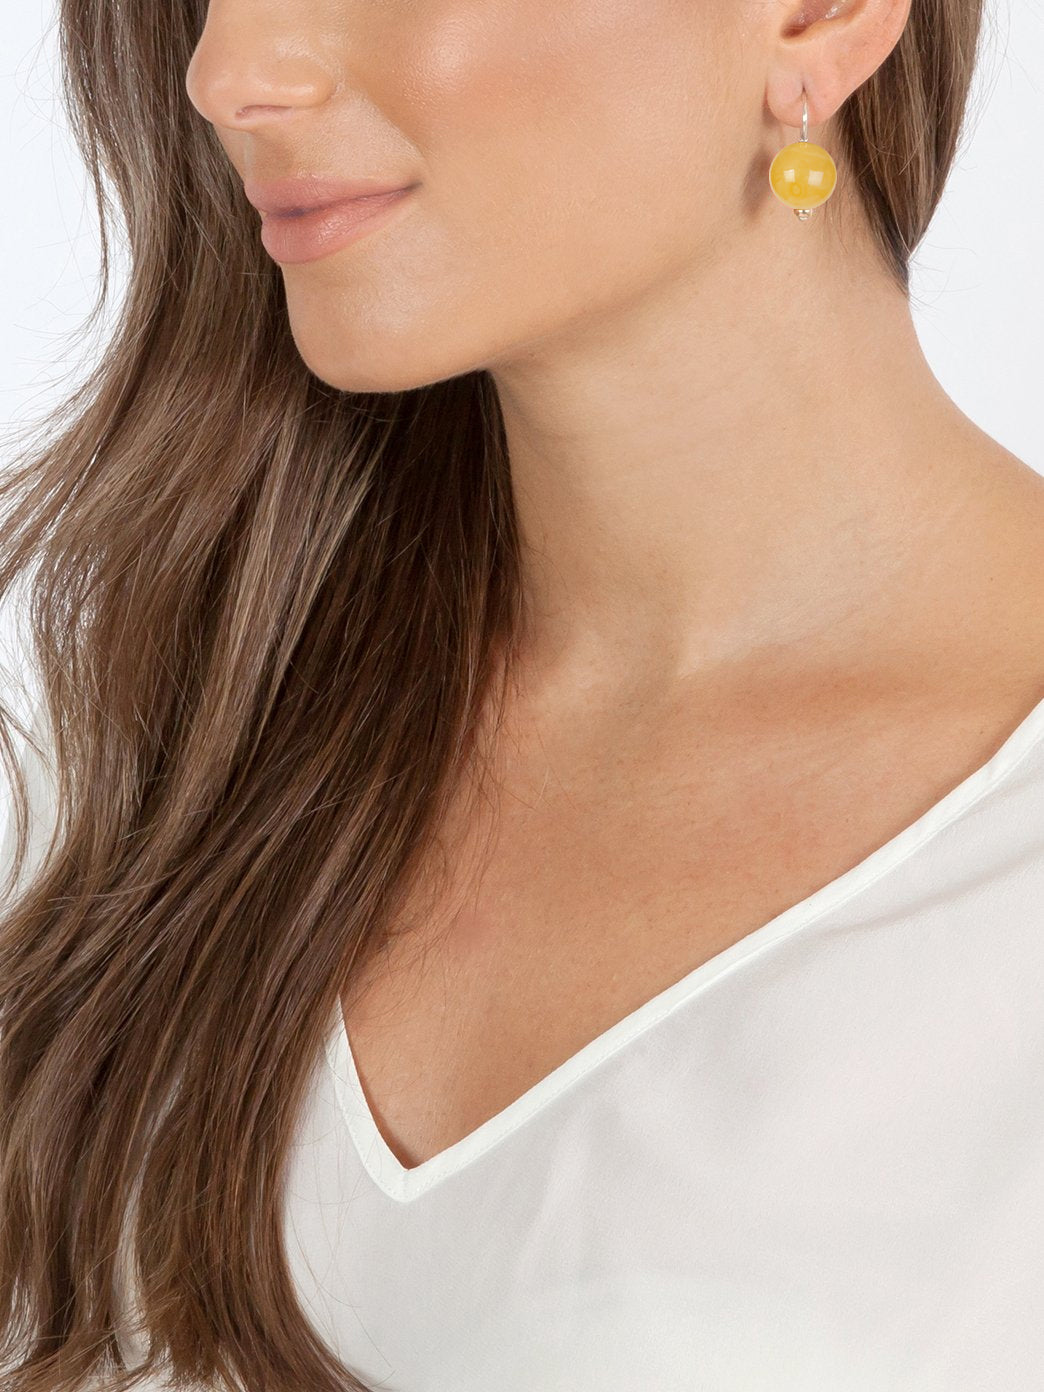 Fiorina Jewellery Ball Earrings Amber Model